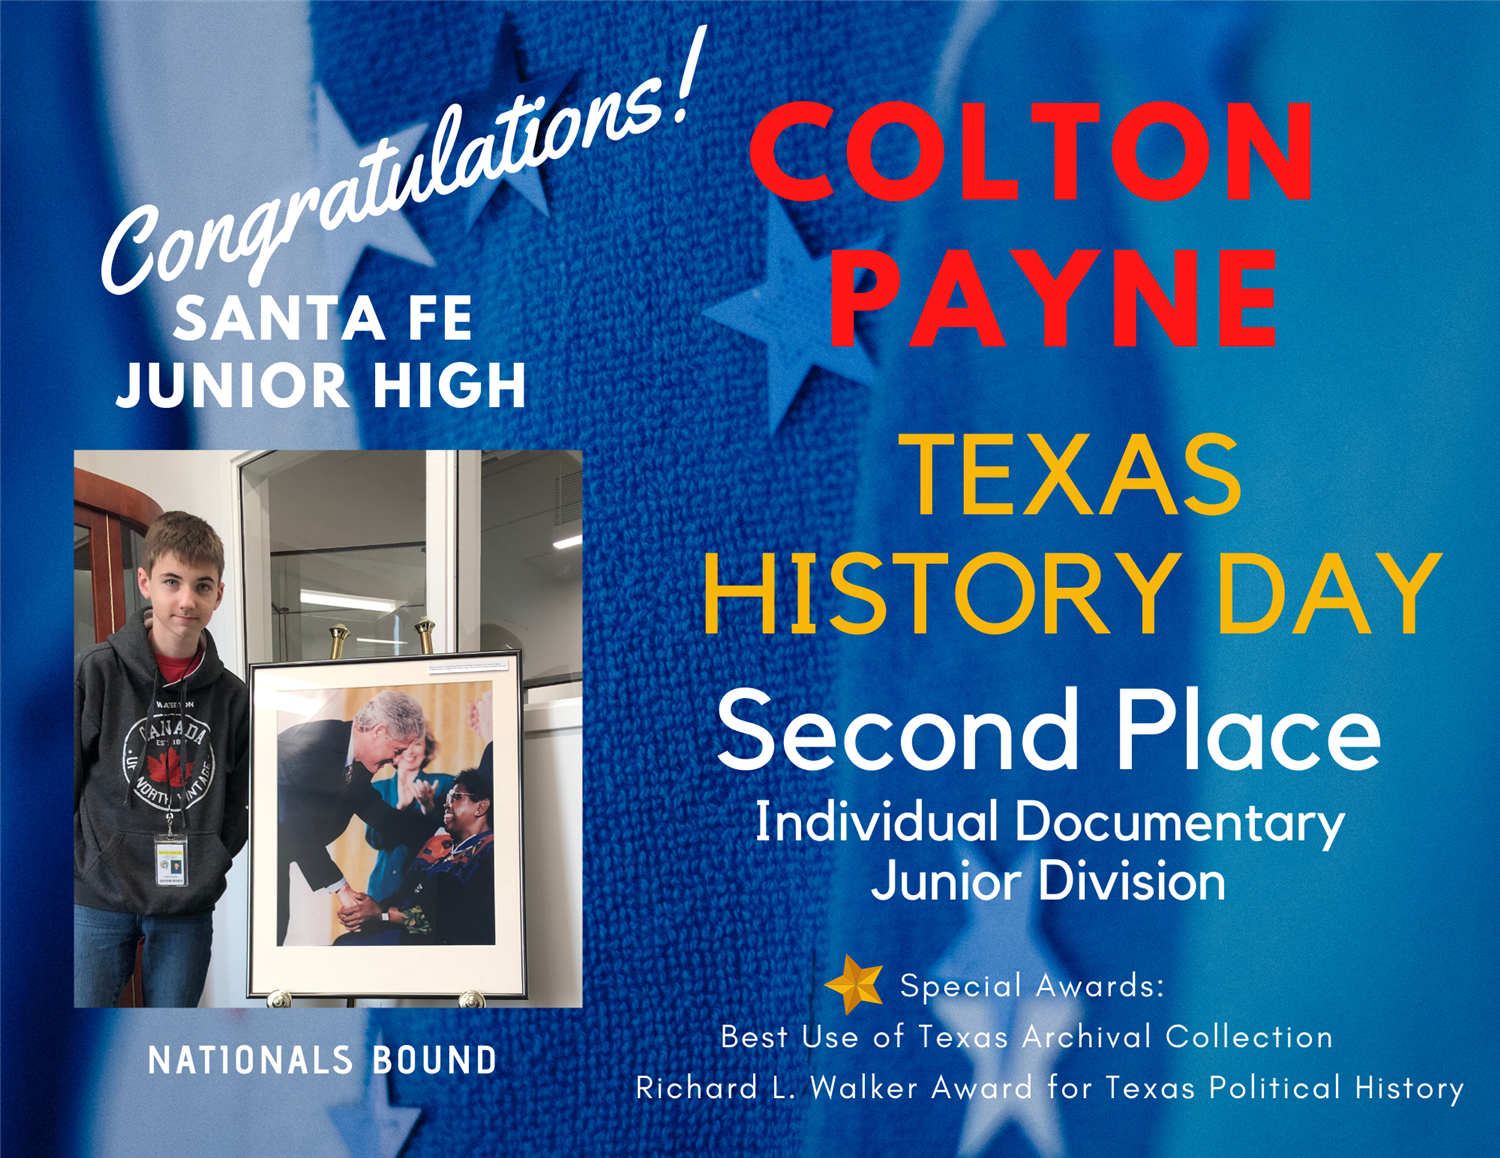 SFJH Student Colton Payne place at Texas History Day